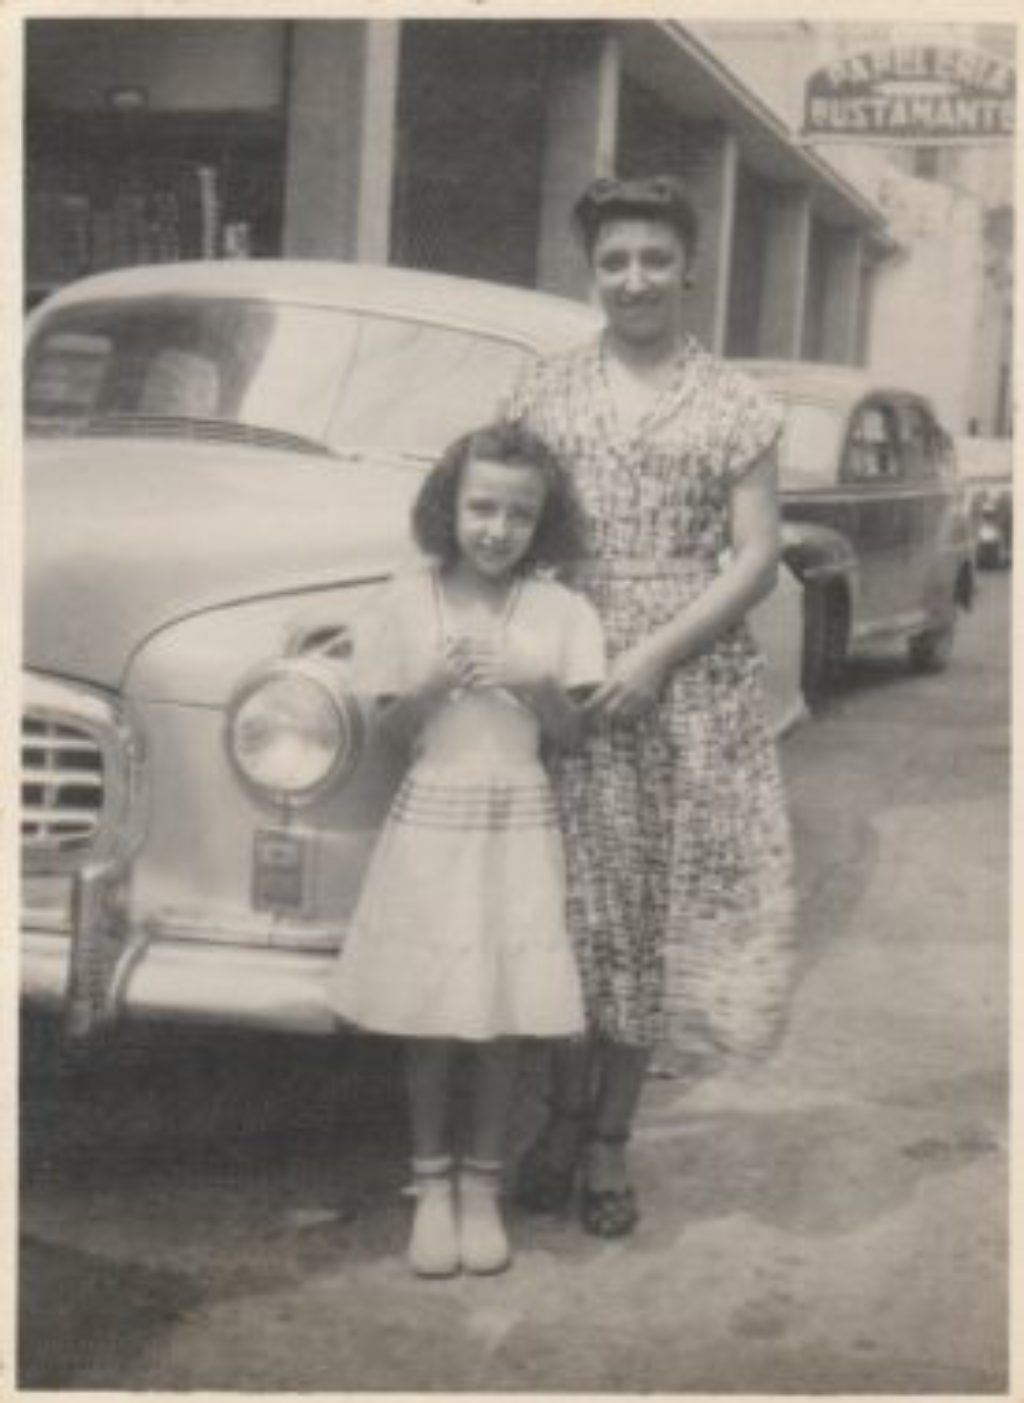 Ida Cesana and her daughter Elsa Yoder circa 1950 in Venezuela